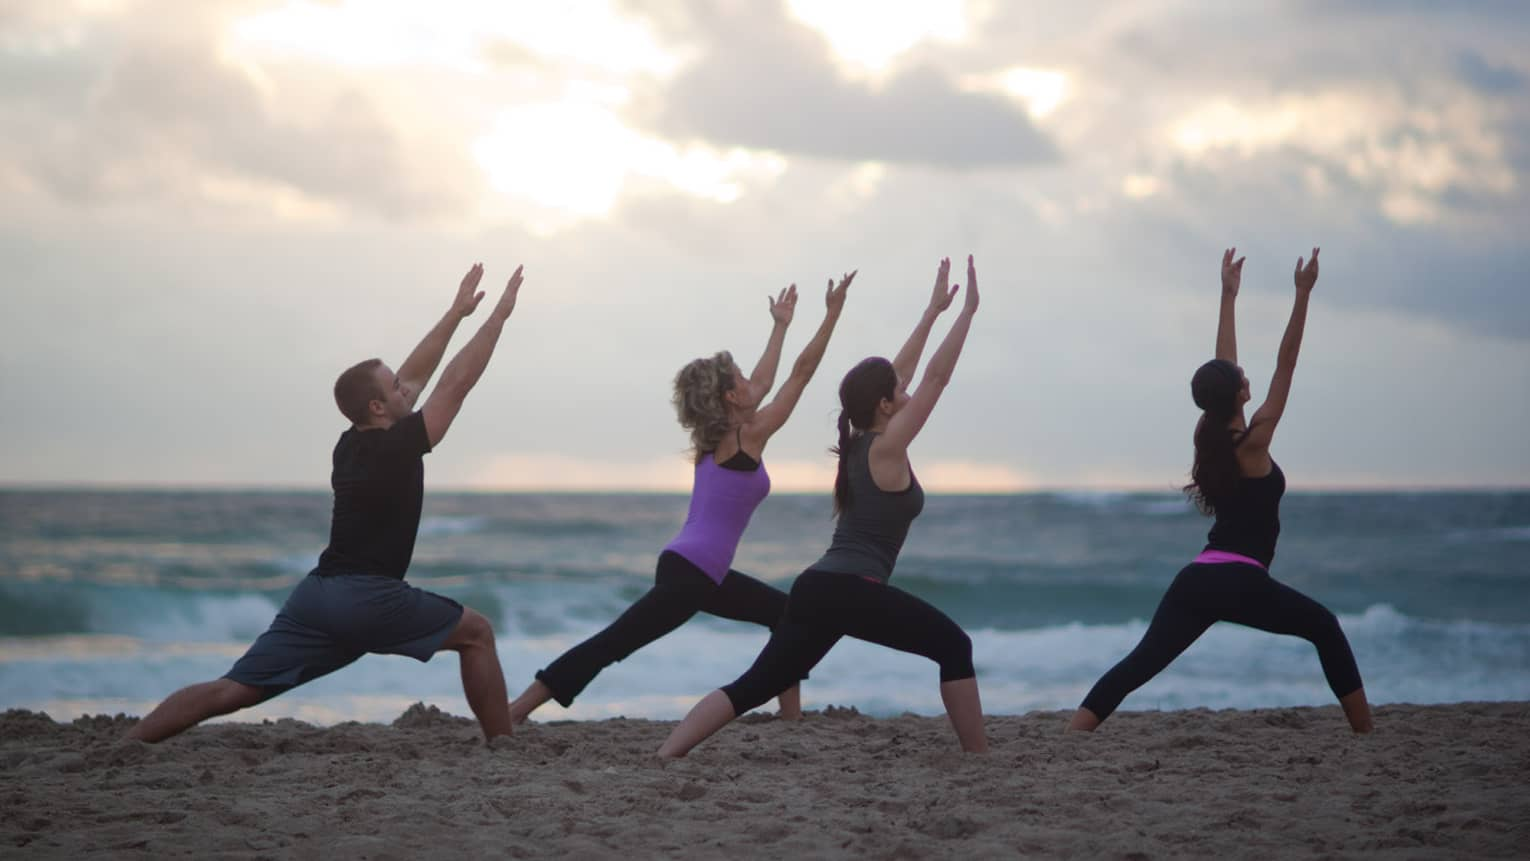 Man in three women in workout clothes do yoga stretch on beach in morning